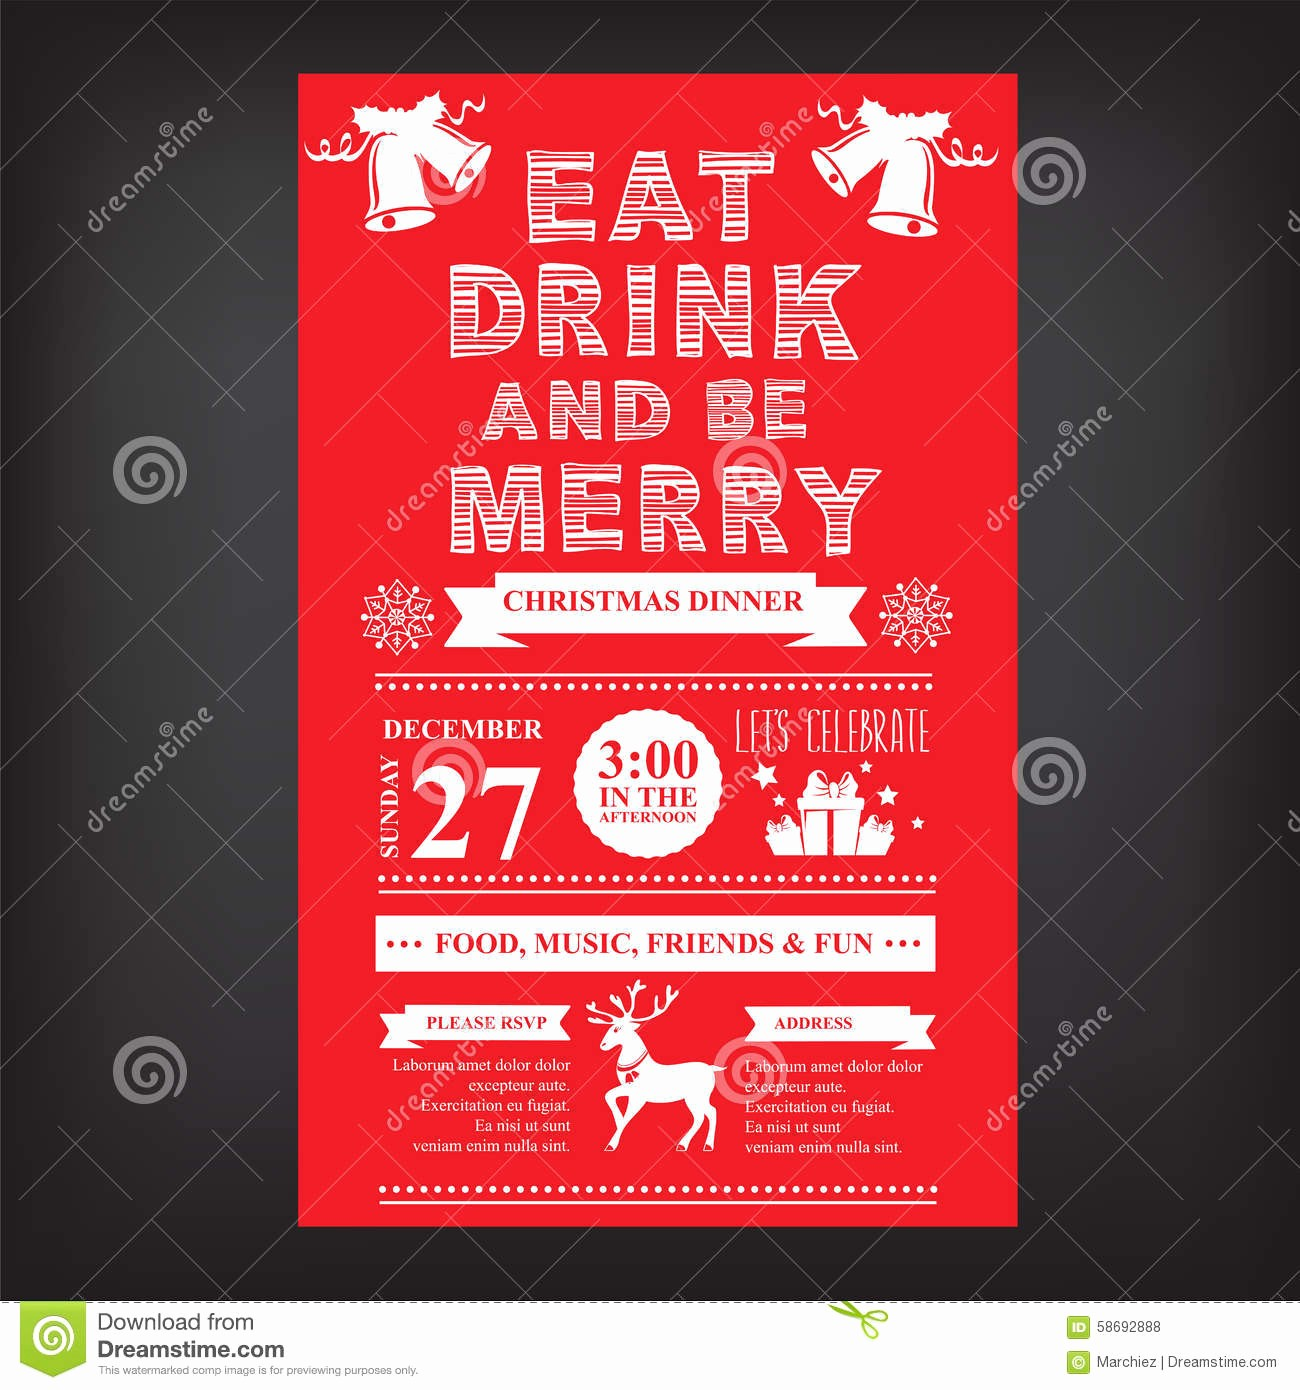 Christmas Menu Templates Free Download Unique Christmas Restaurant and Party Menu Invitation Stock